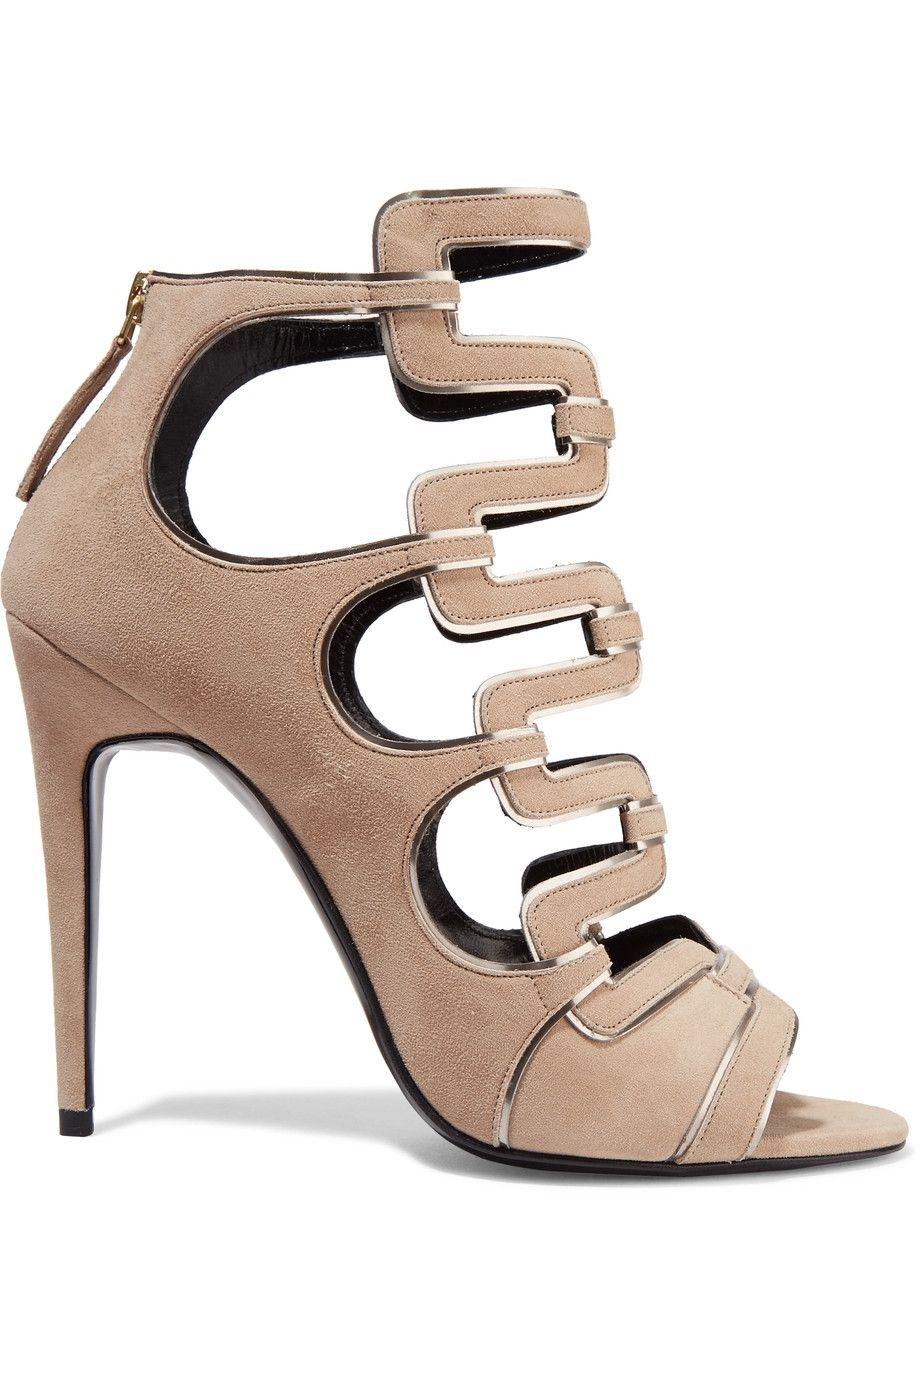 buy cheap purchase discount cheap price Pierre Hardy Suede Cut-Out Sandals azjdvW